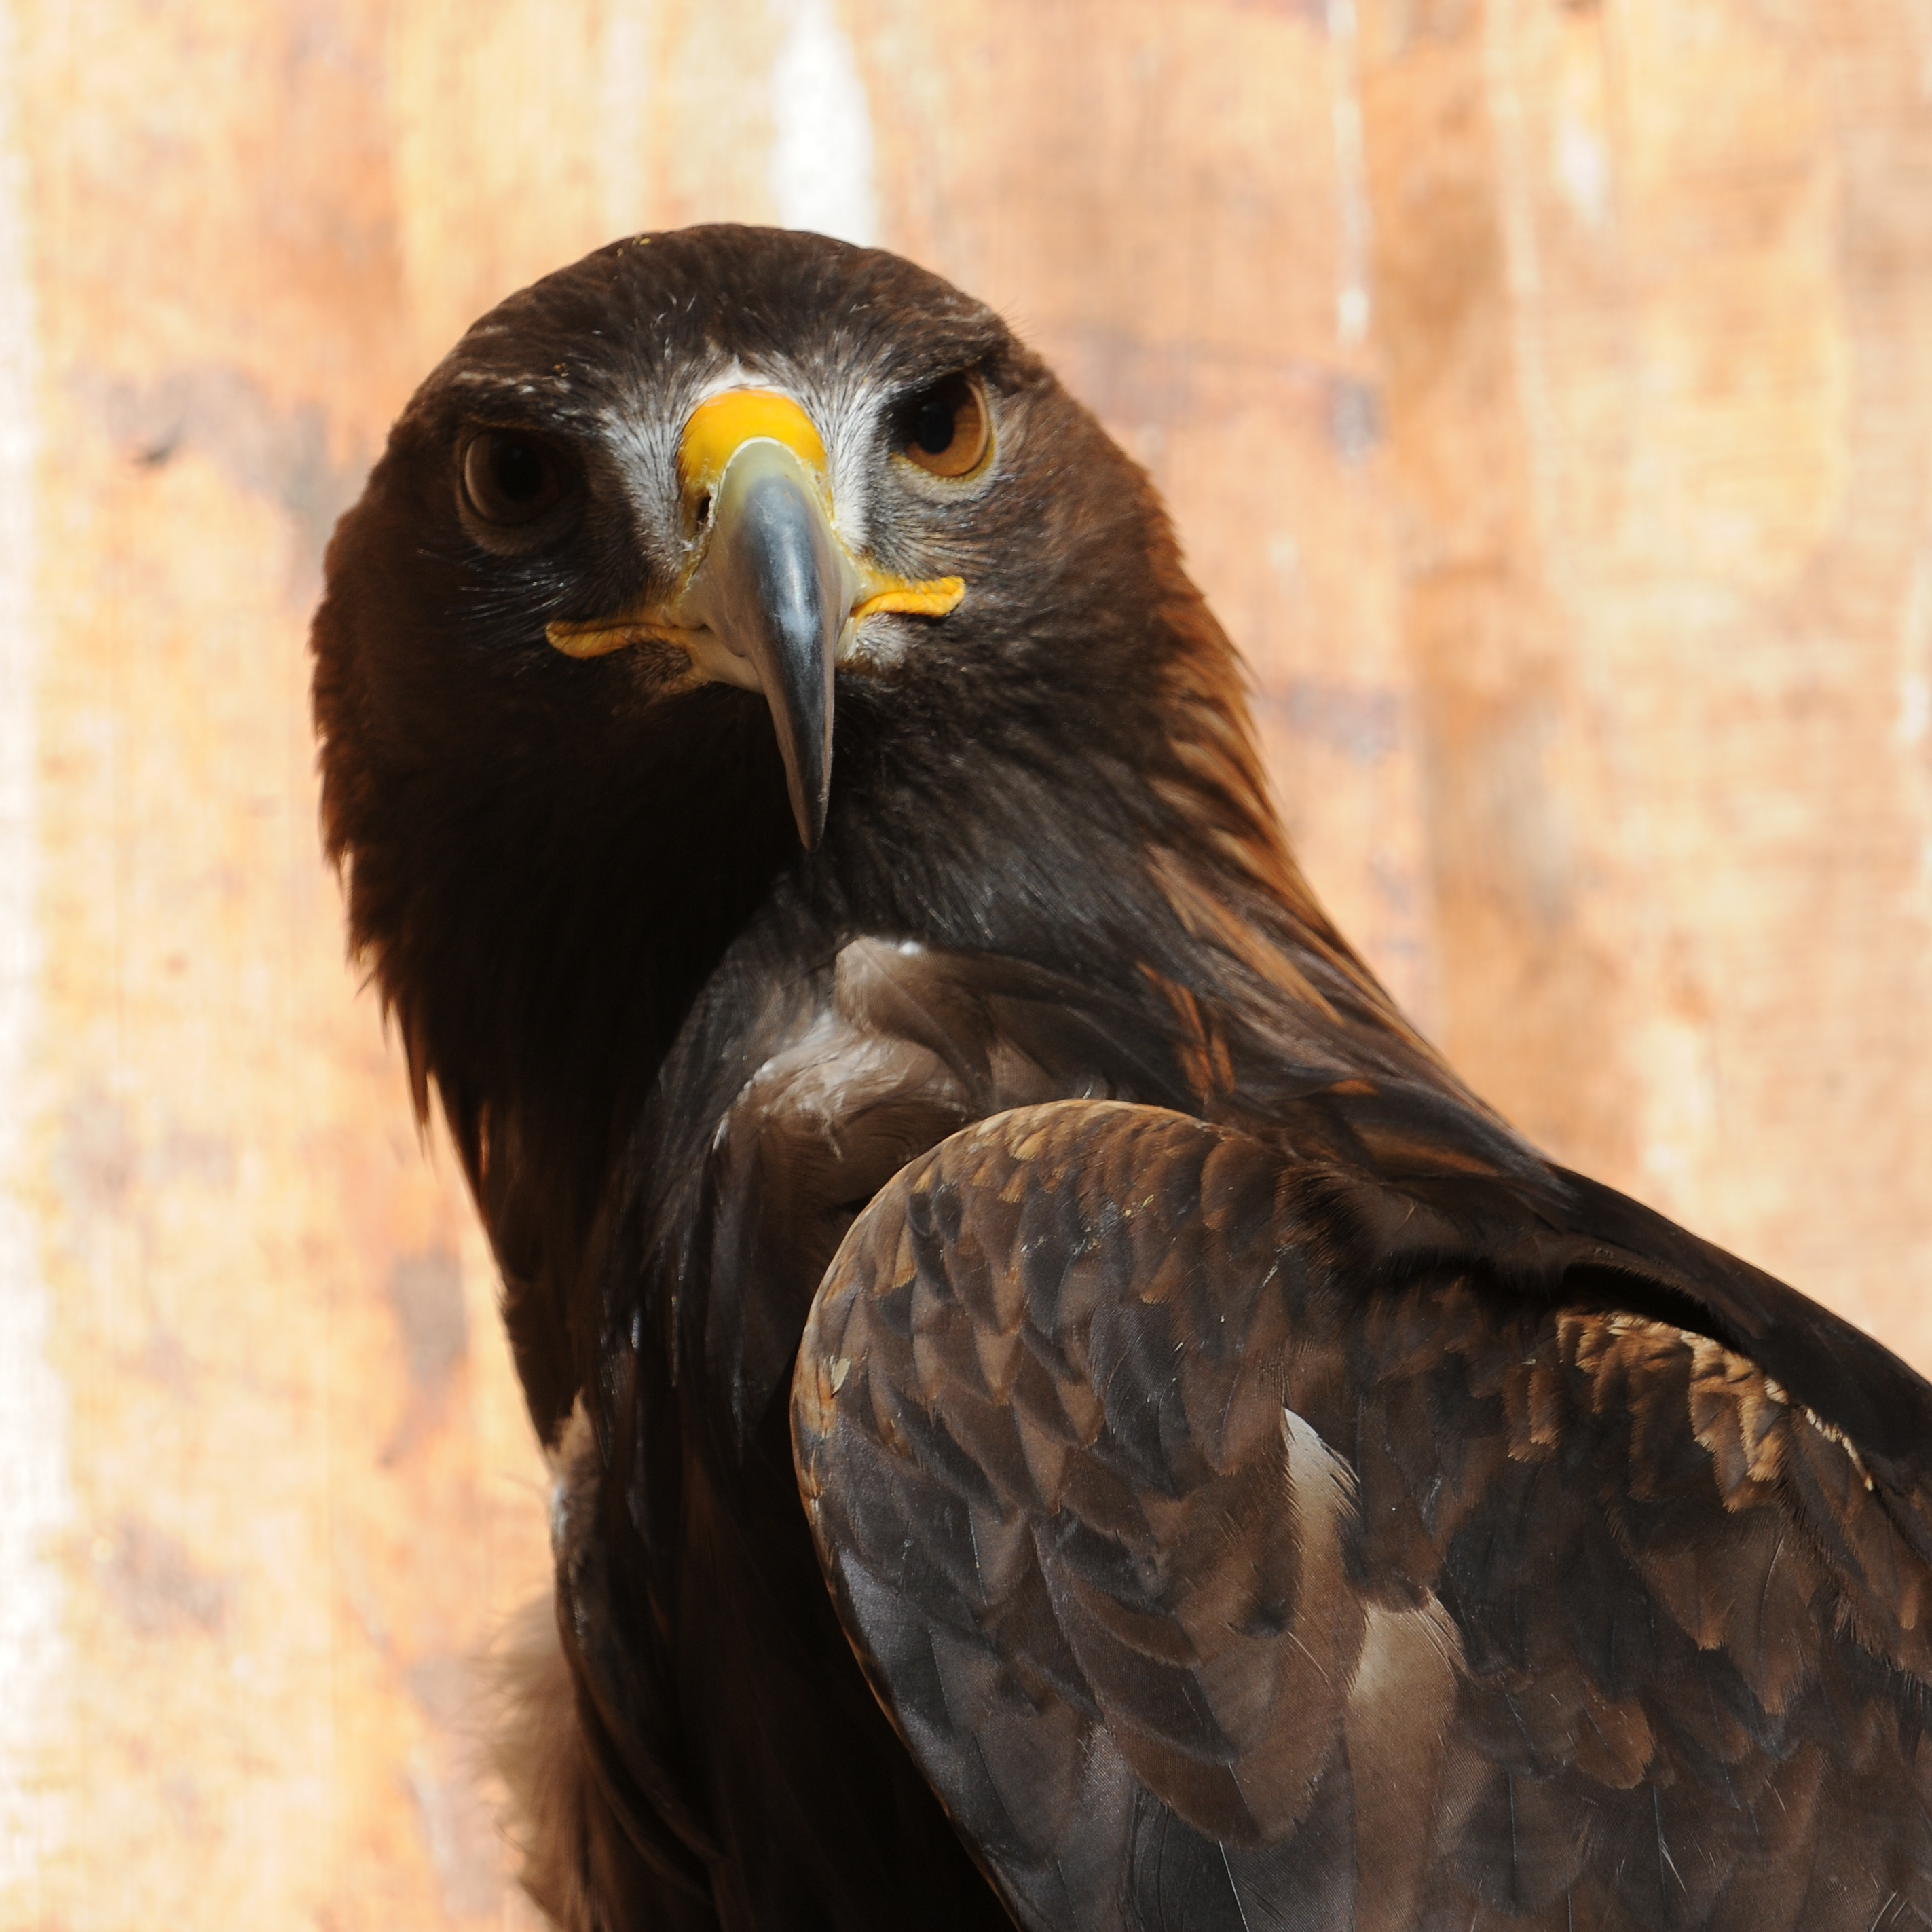 File:Steinadler, Aquila chrysaetos 05.JPG - Wikimedia Commons